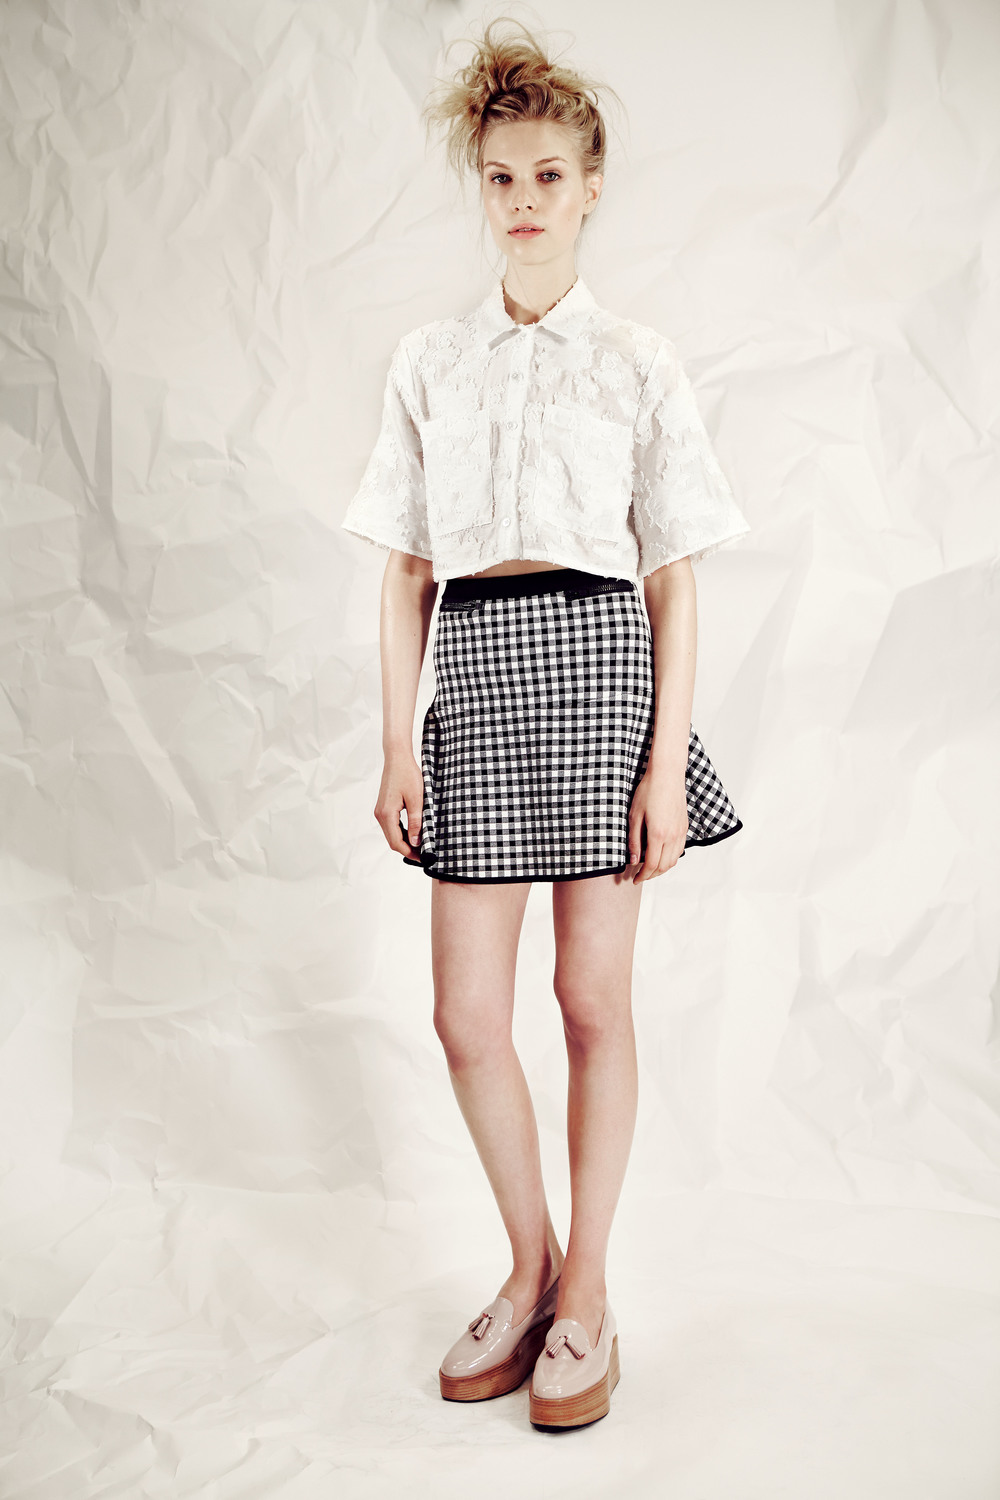 TIMO WEILAND RESORT 15 LOOK 6.jpg